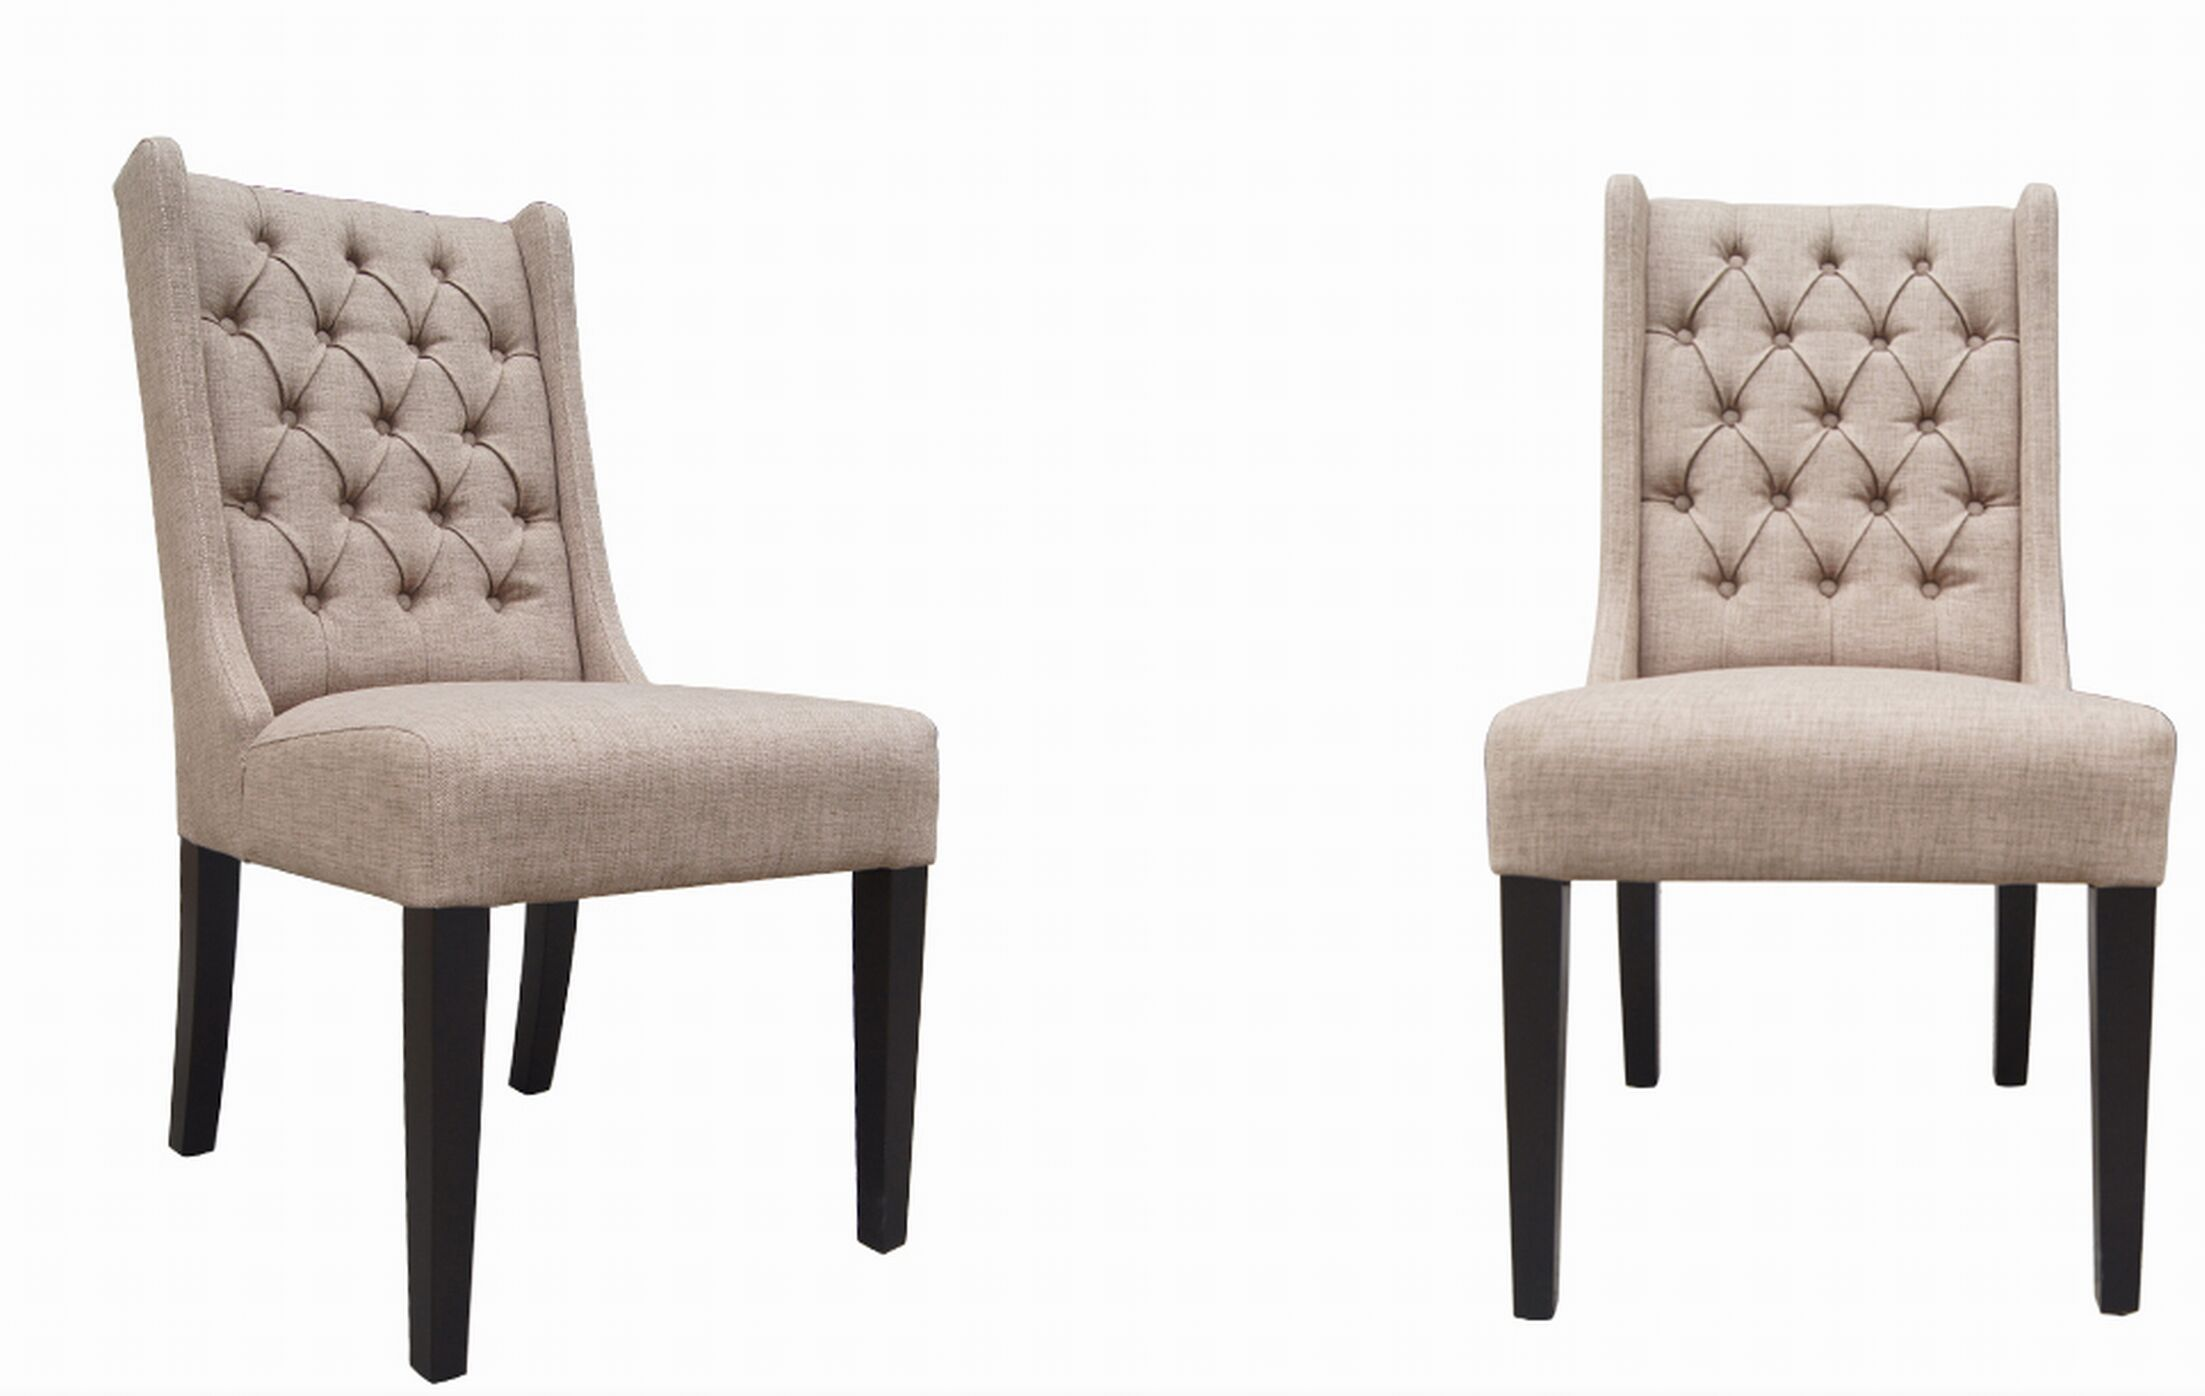 Captiva Upholstered Dining Chair